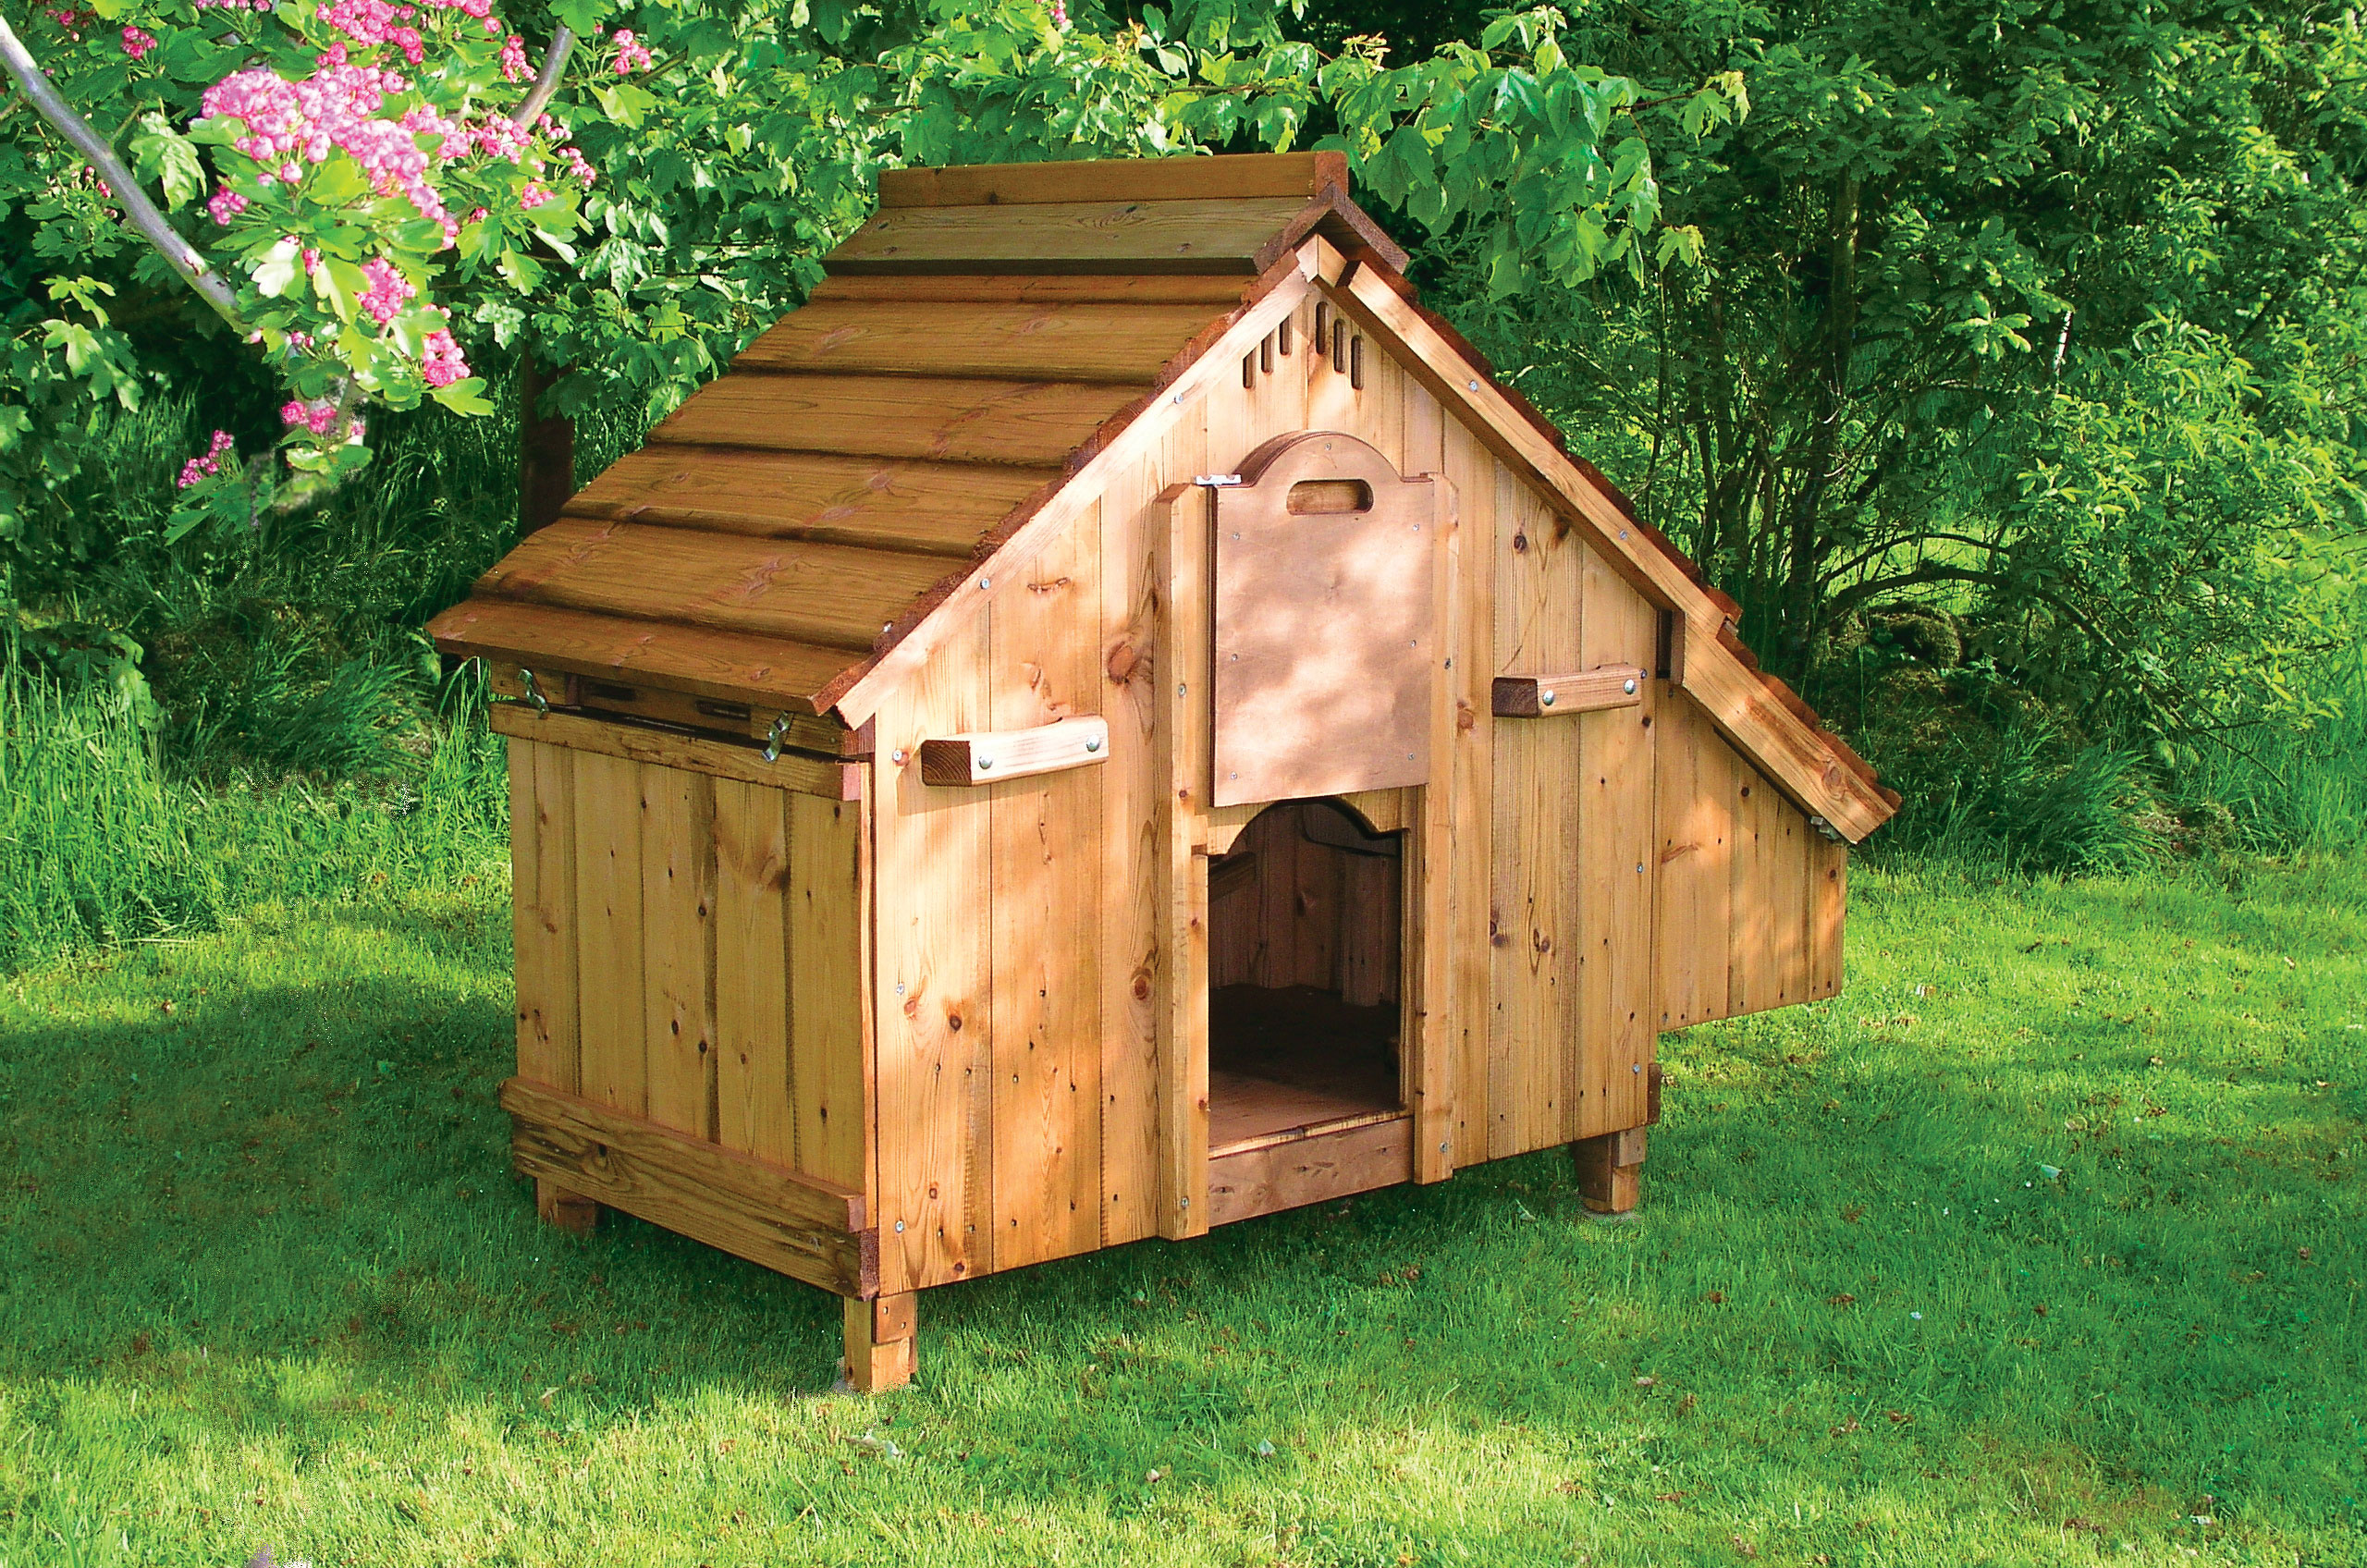 Chicken House lenham chicken coop | wooden chicken ark for 12 birds